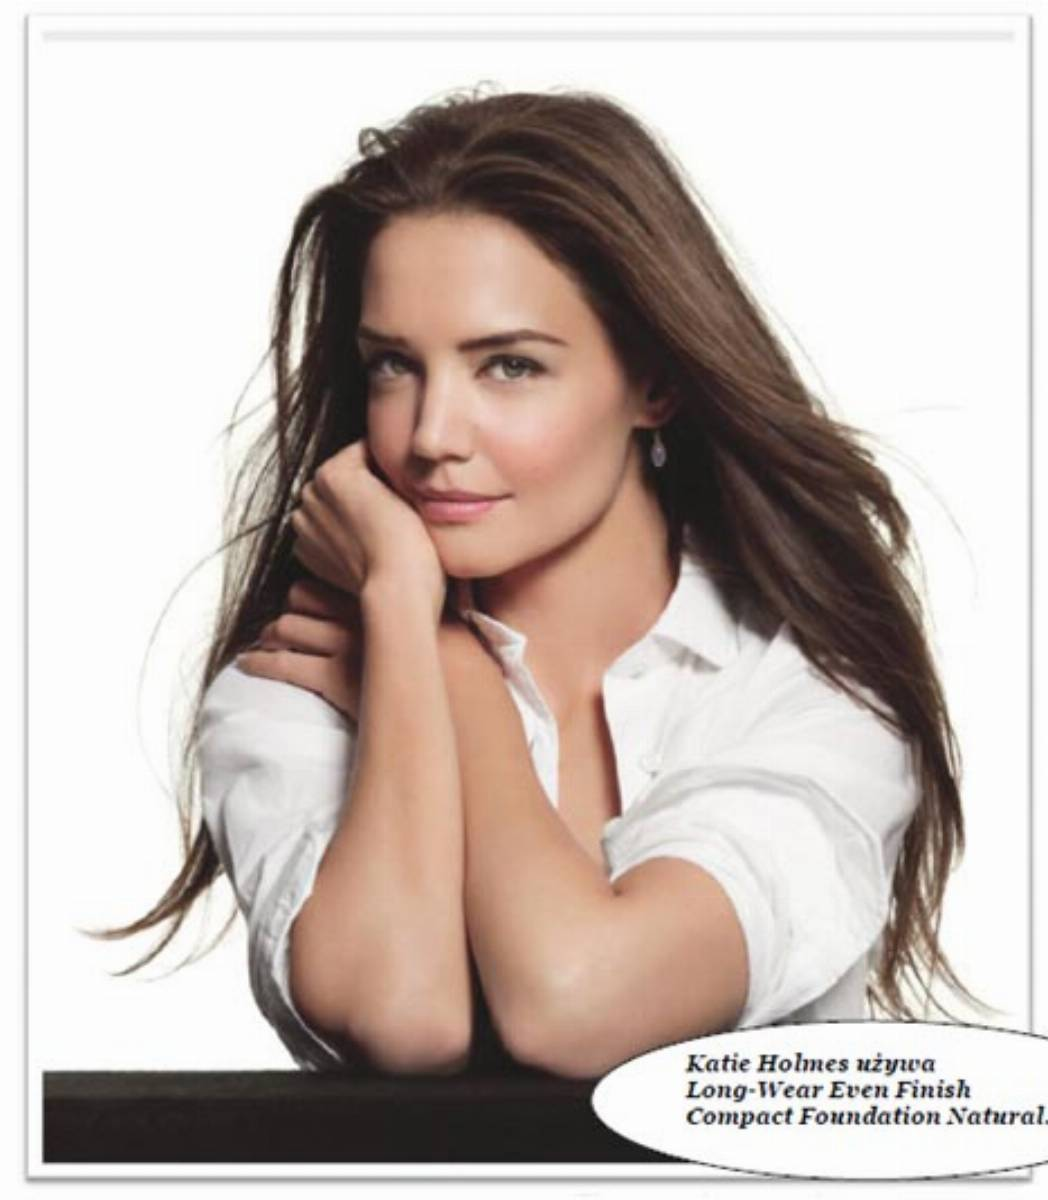 Katie Holmes Long-Wear Even Finish Compact Foundation